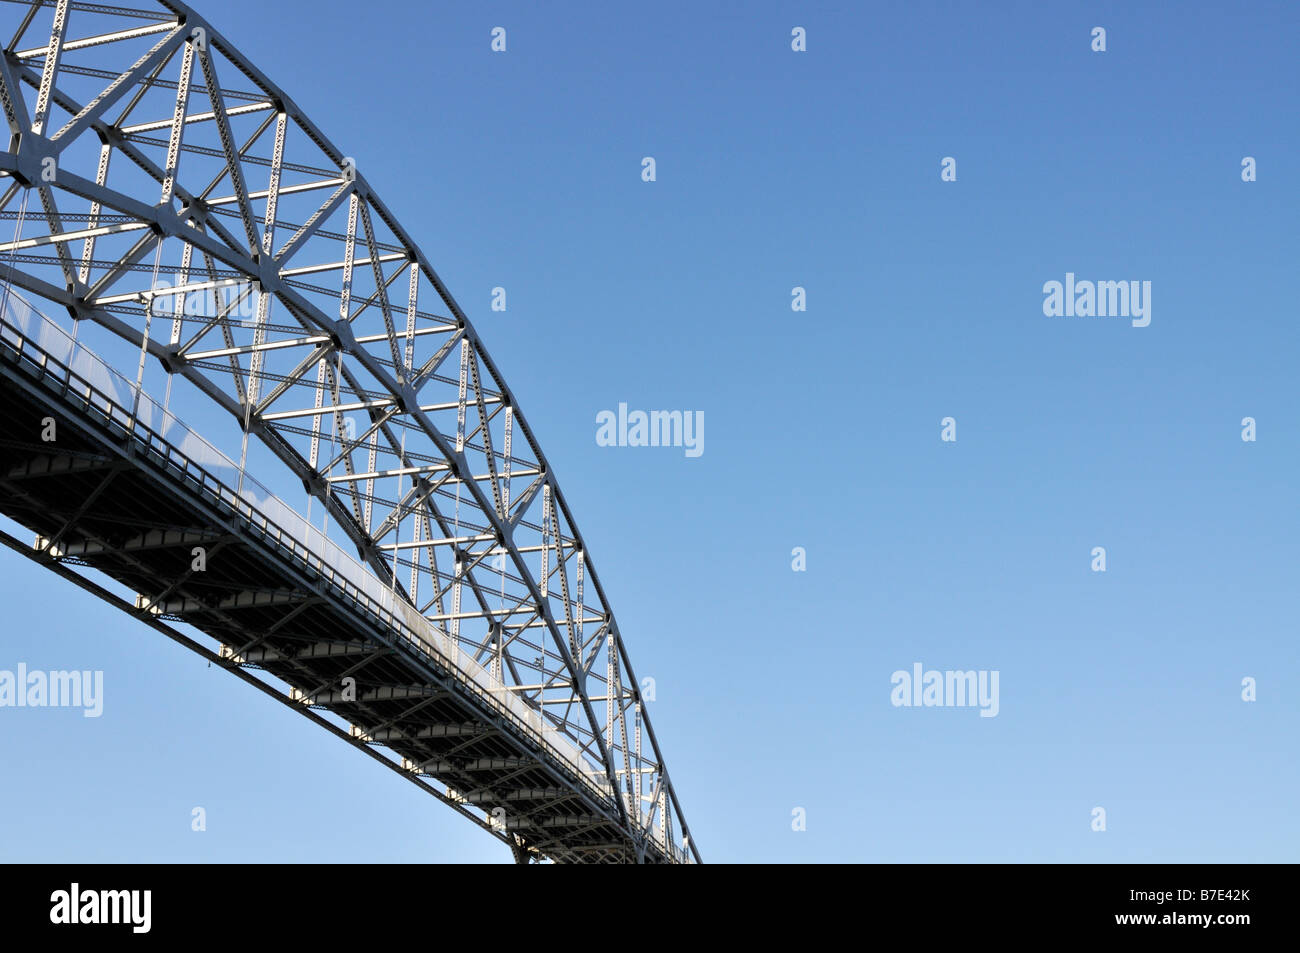 Abstract view of a bridge taken from below looking up Bourne Bridge over the Cape Cod Canal - Stock Image